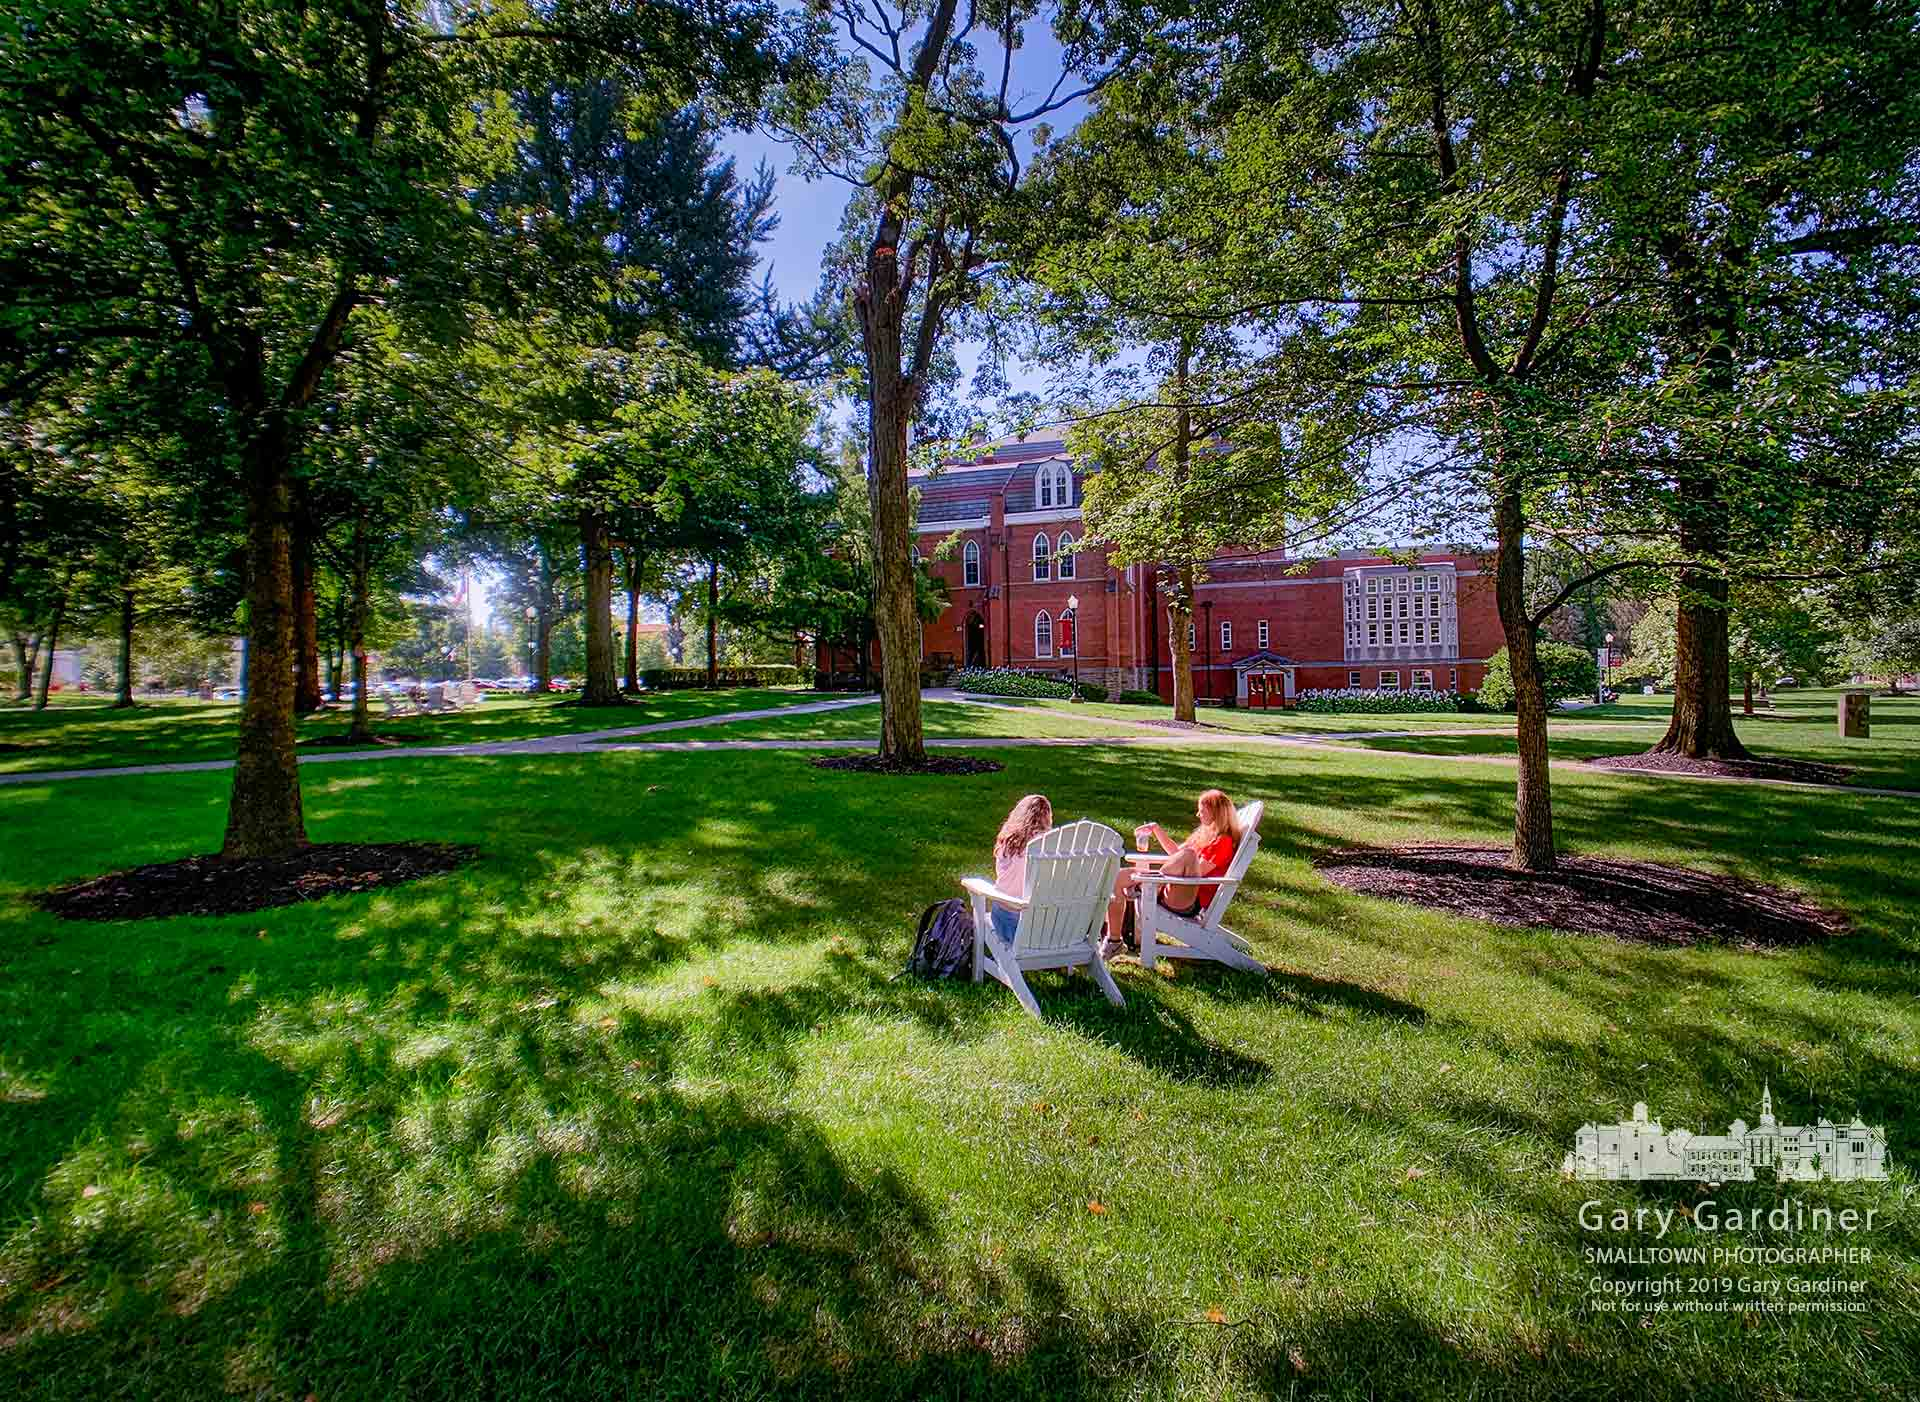 Two Otterbein students take a break on campus with a rest in the Adirondack chairs the school has placed on the lawns around campus. My Final Photo for Sept. 3, 2019.